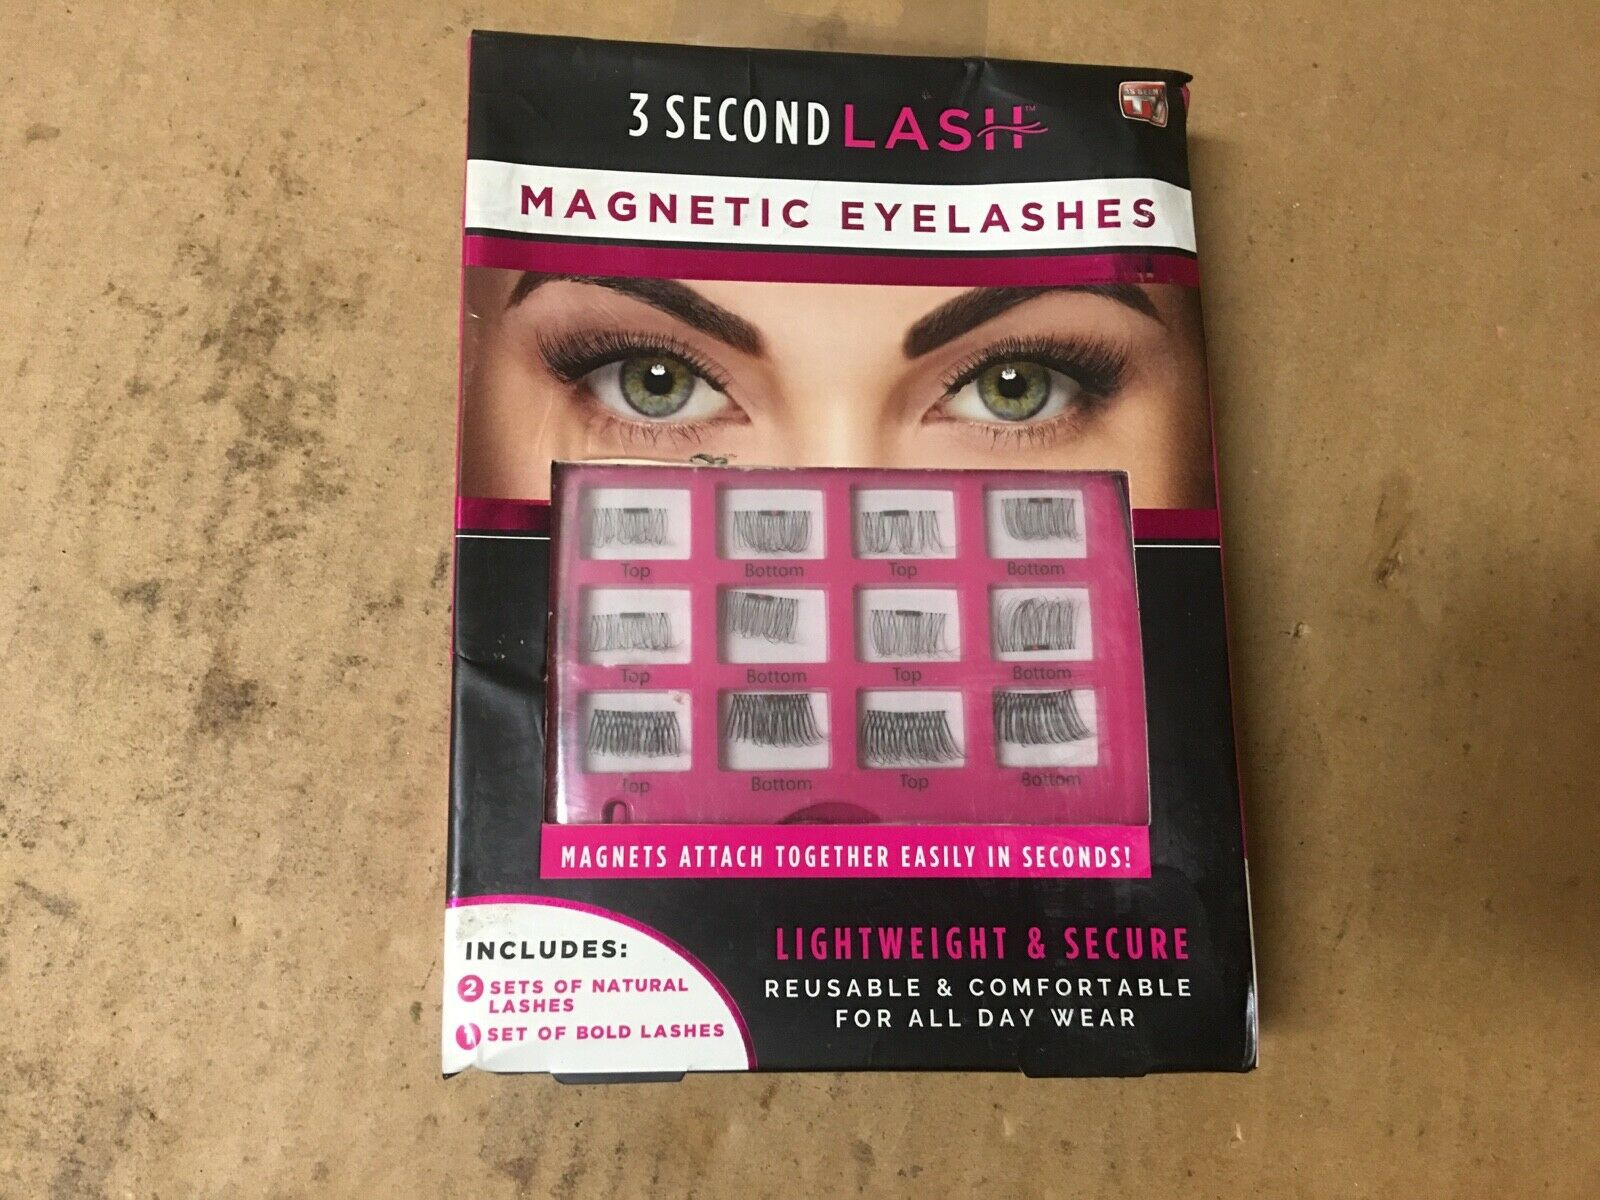 96c93a3b338 Allstar Innovations 3 Second Lash Magnetic Eyelash Accents as Seen on TV  False for sale online | eBay